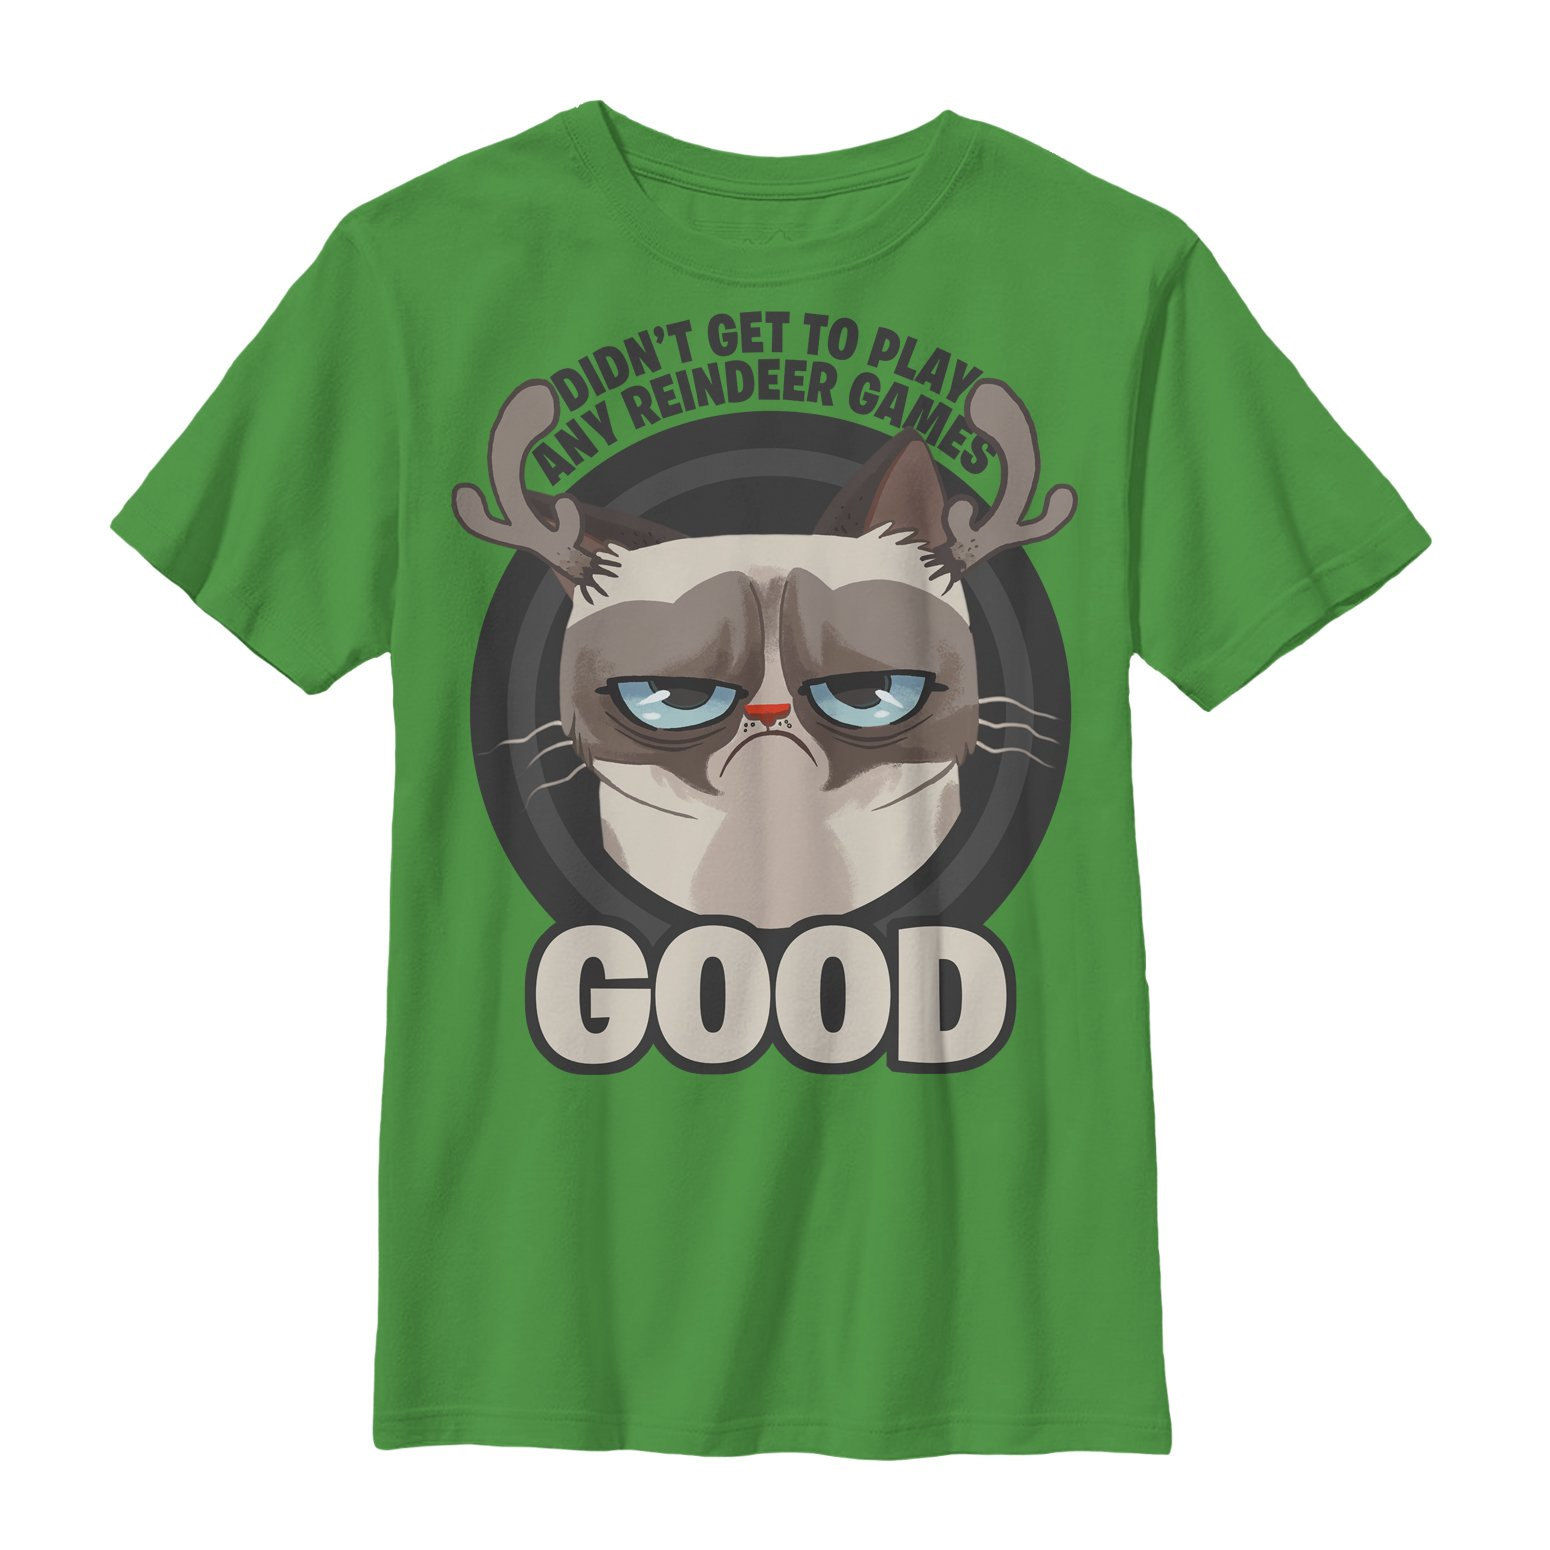 Grumpy Cat Boys' Reindeer Games T-Shirt